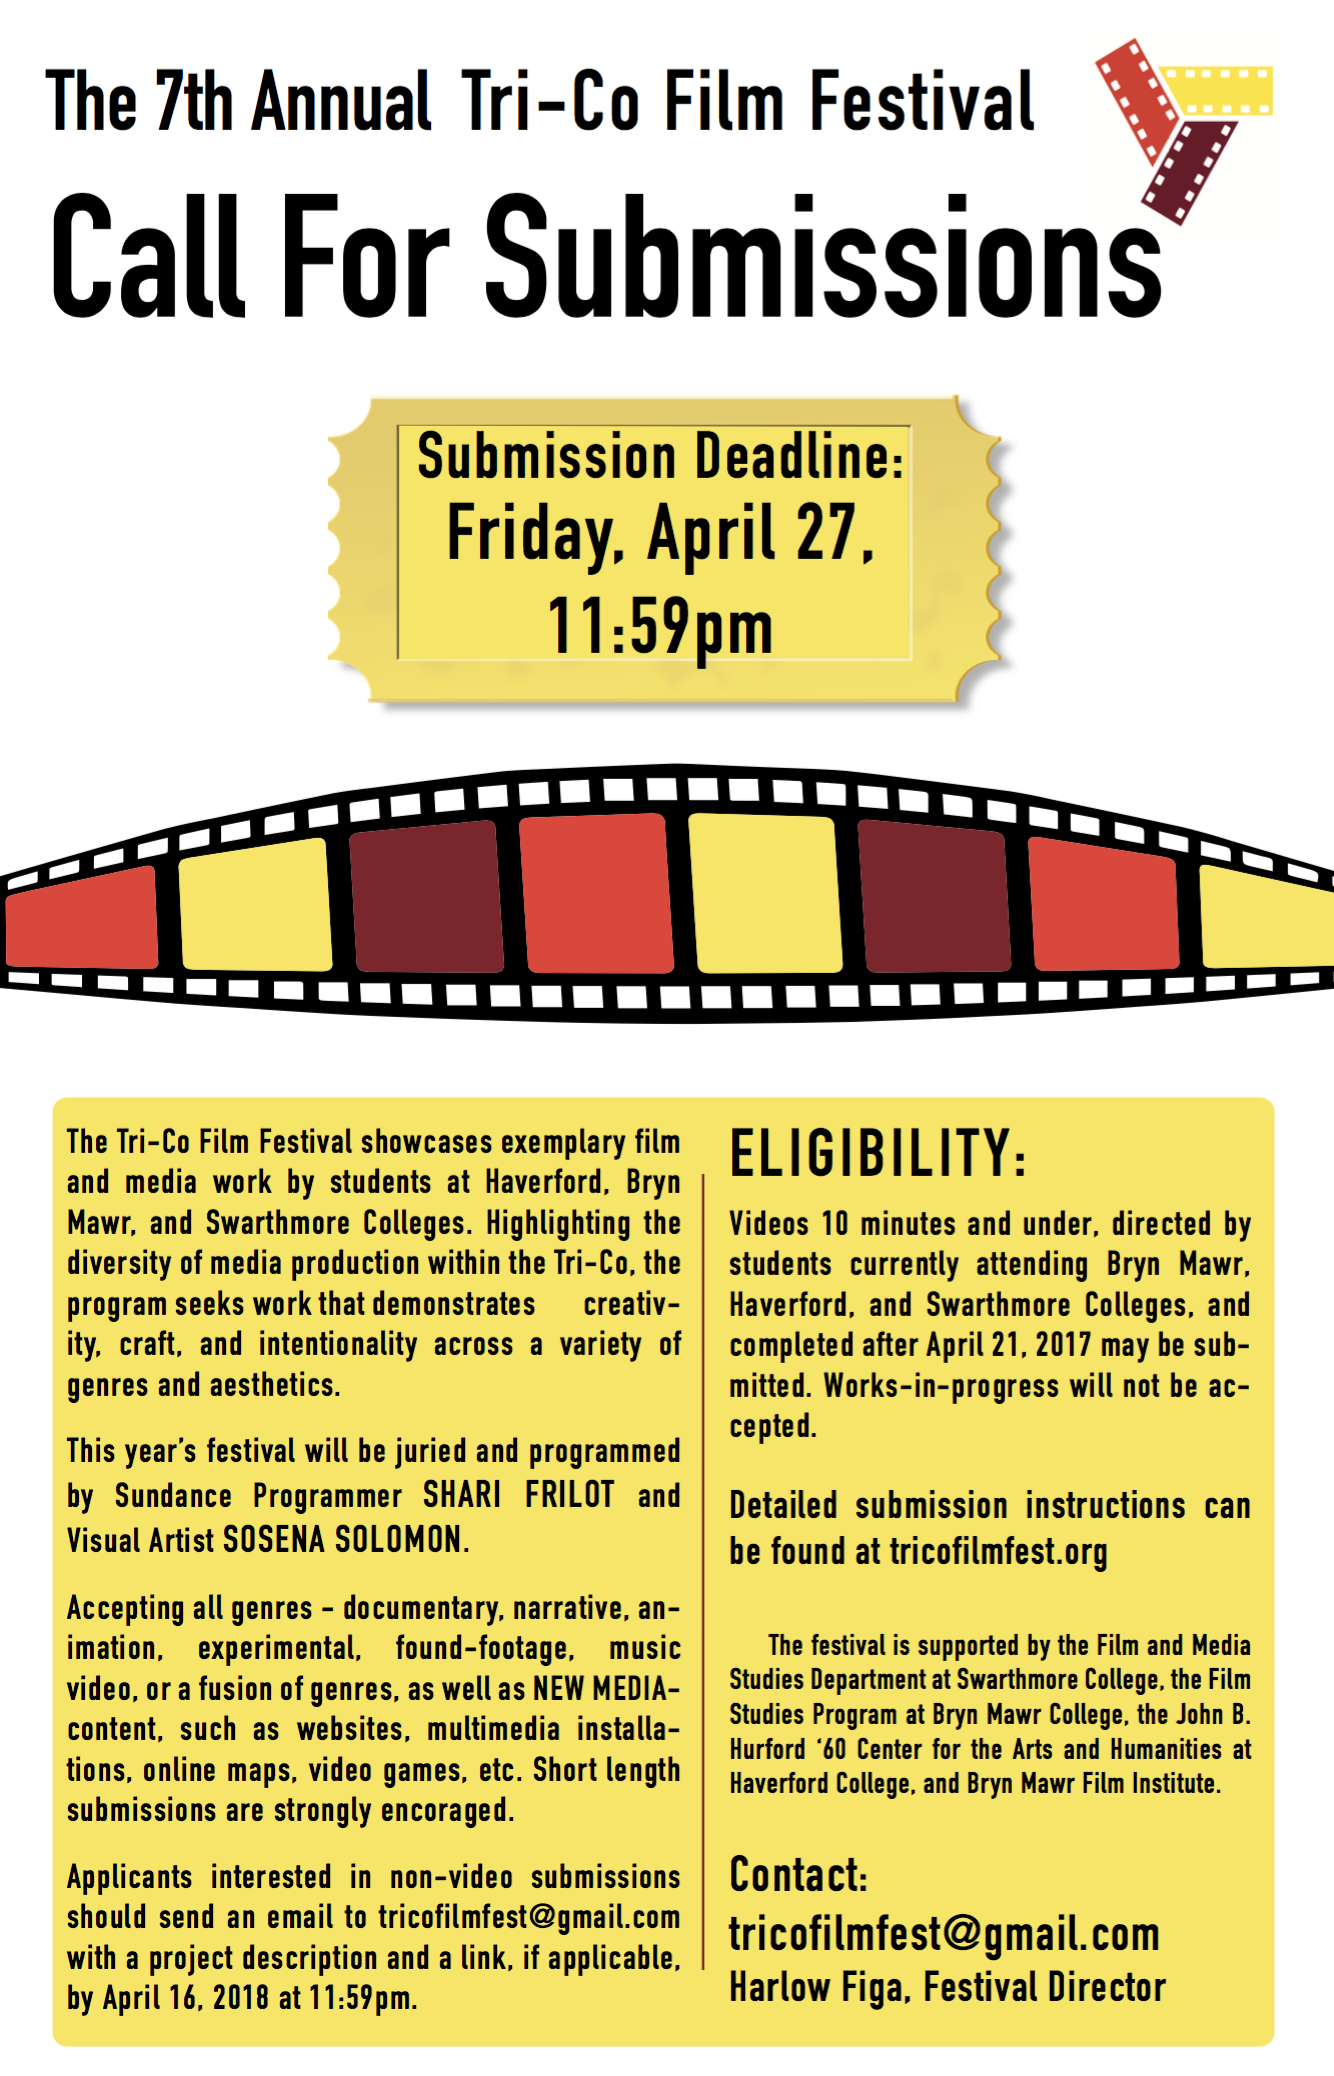 TriCo Film Festival Advertising Poster detailing all text as posted below